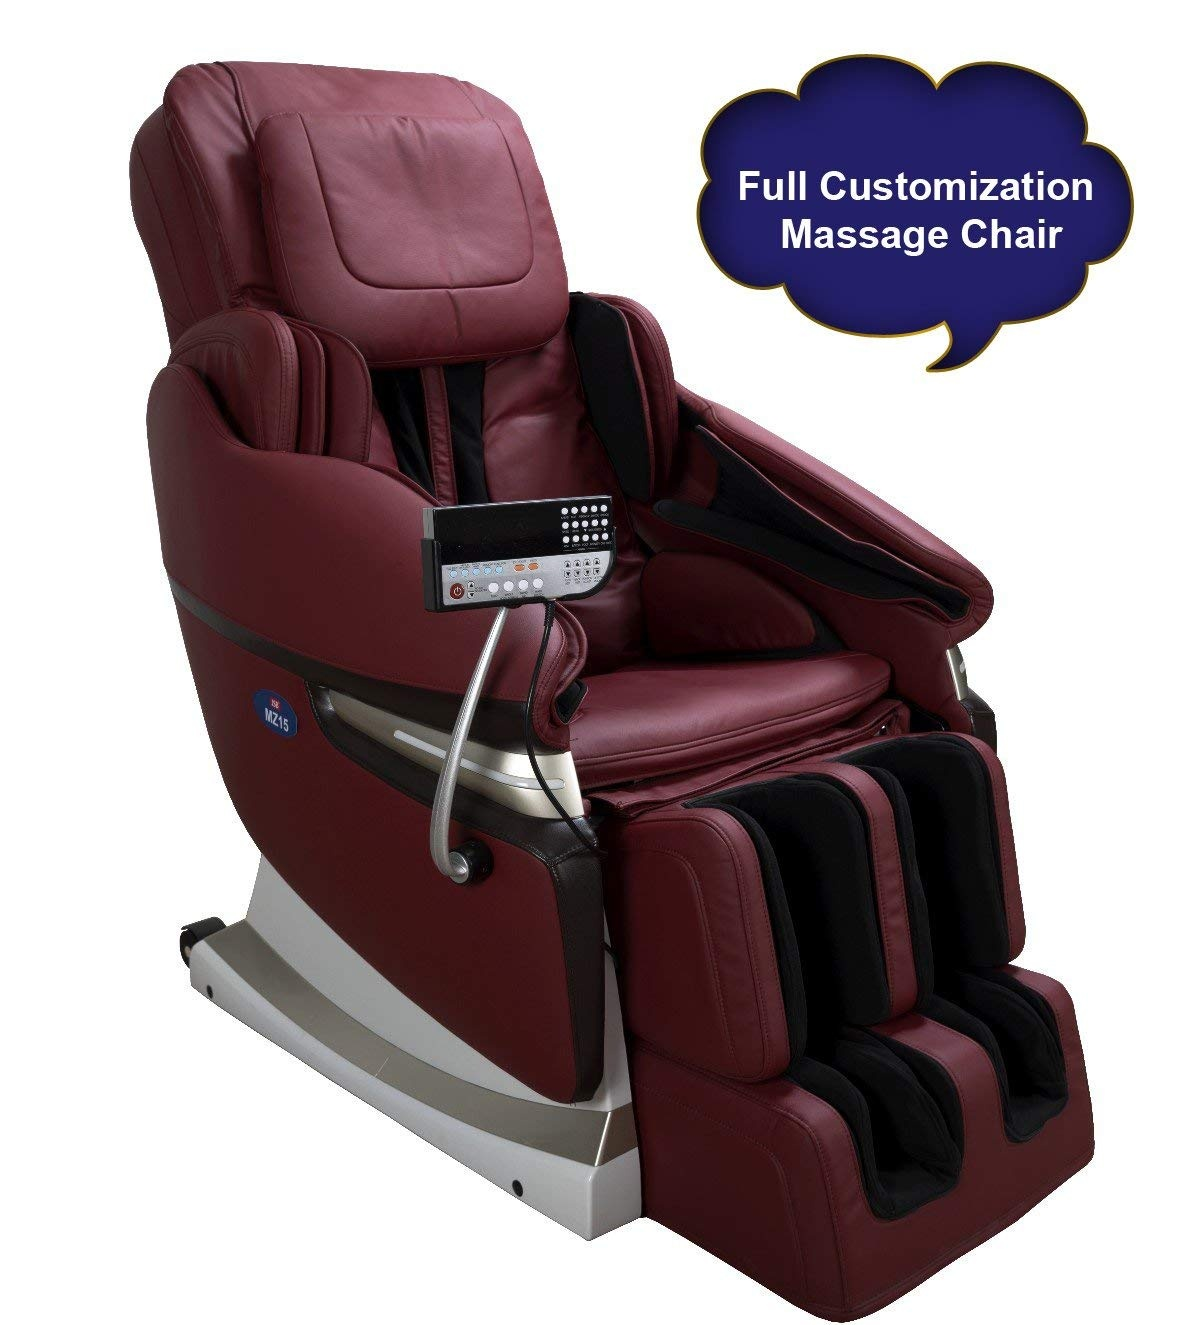 Sleep Recliner Chair Chairs What Is The Best Recliner For Sleeping In Quora